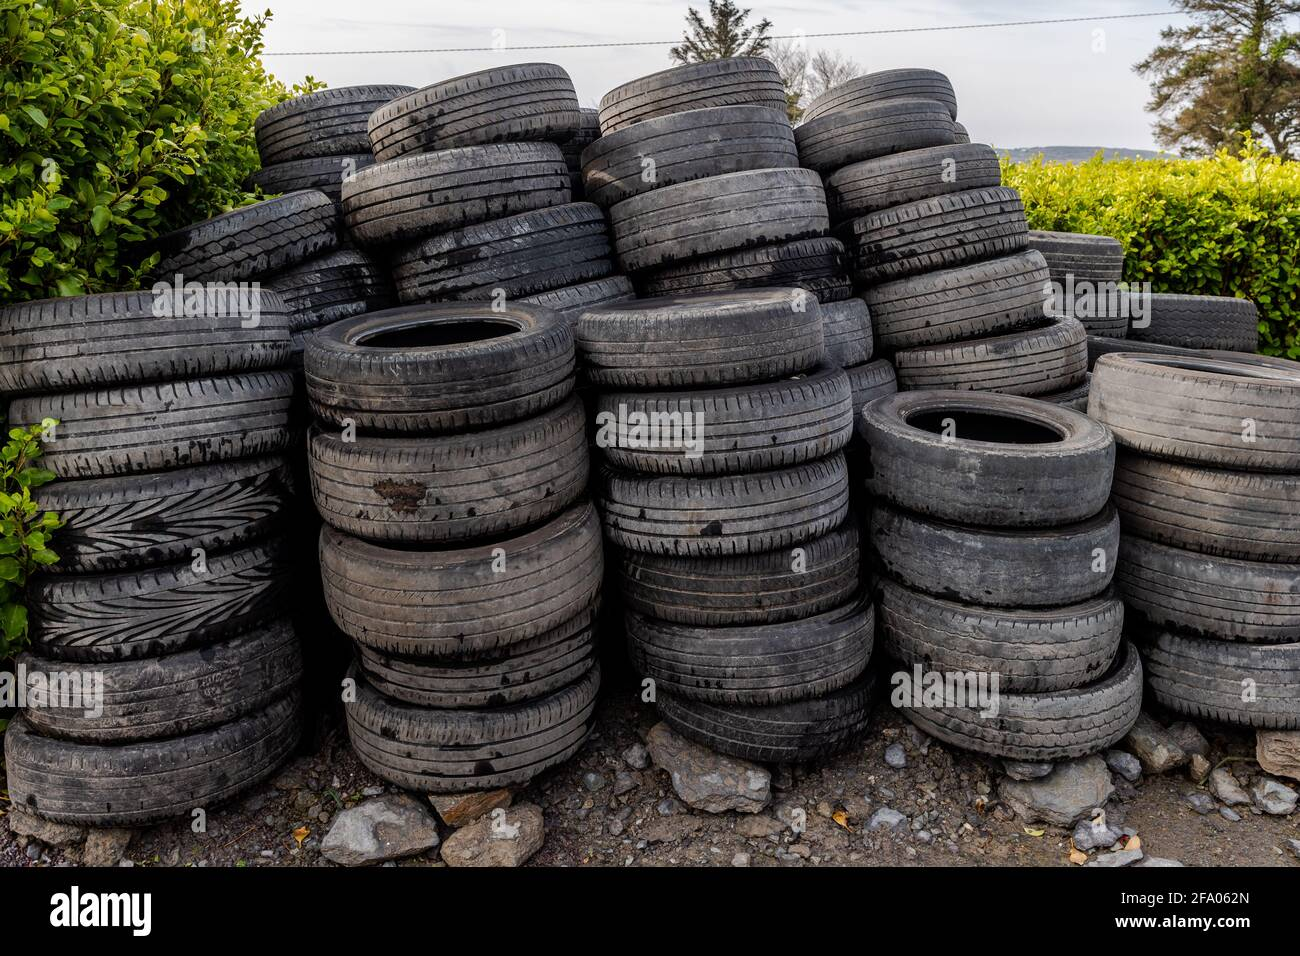 stacks-of-old-and-used-car-tyres-2FA062N.jpg